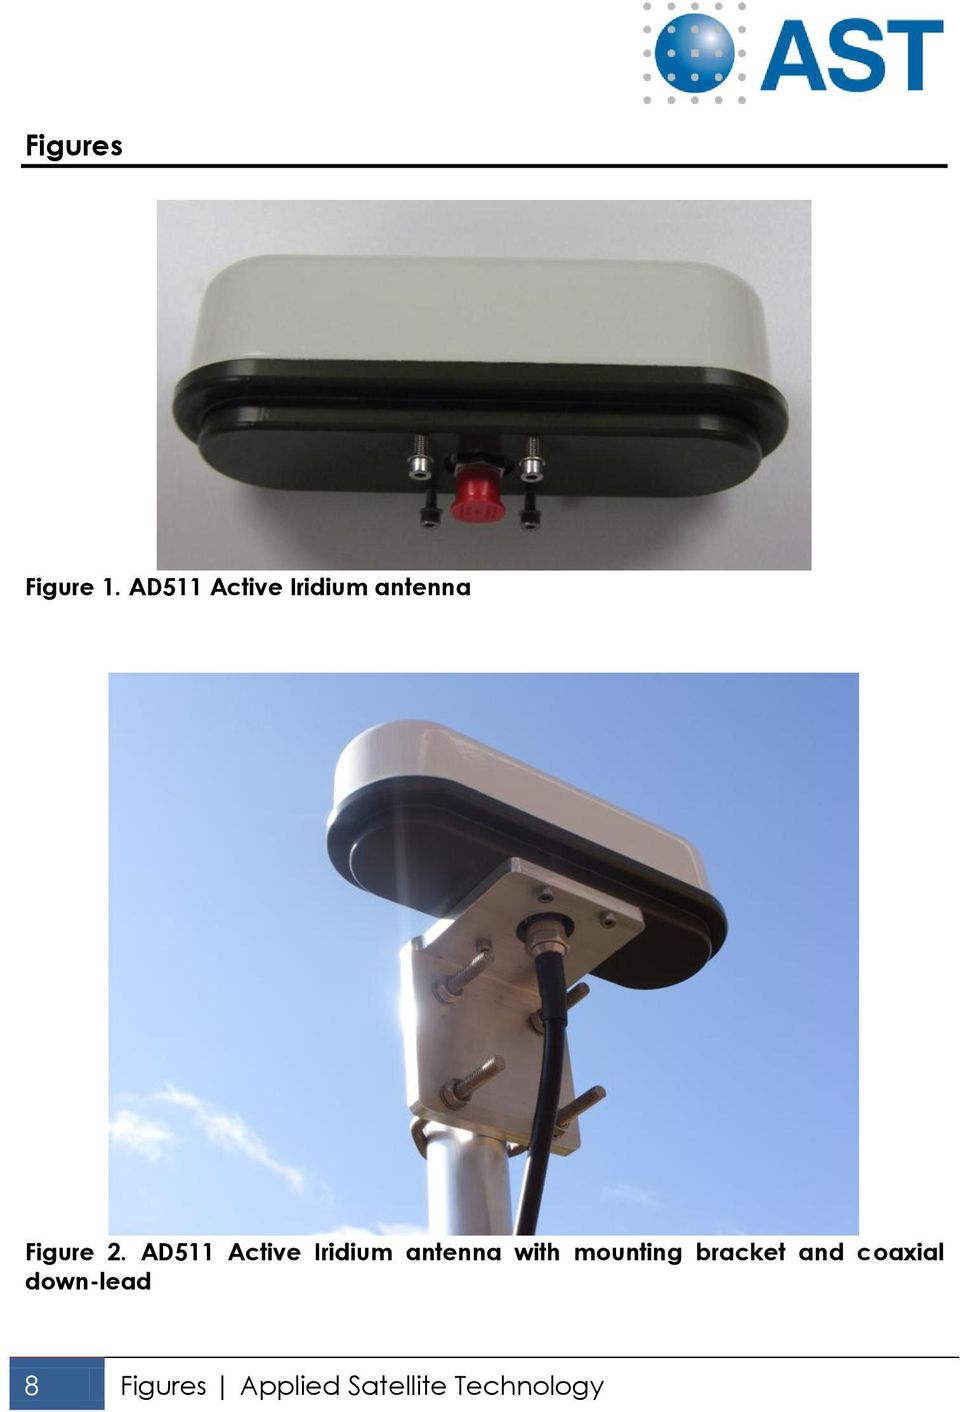 AD511 Active Iridium antenna with